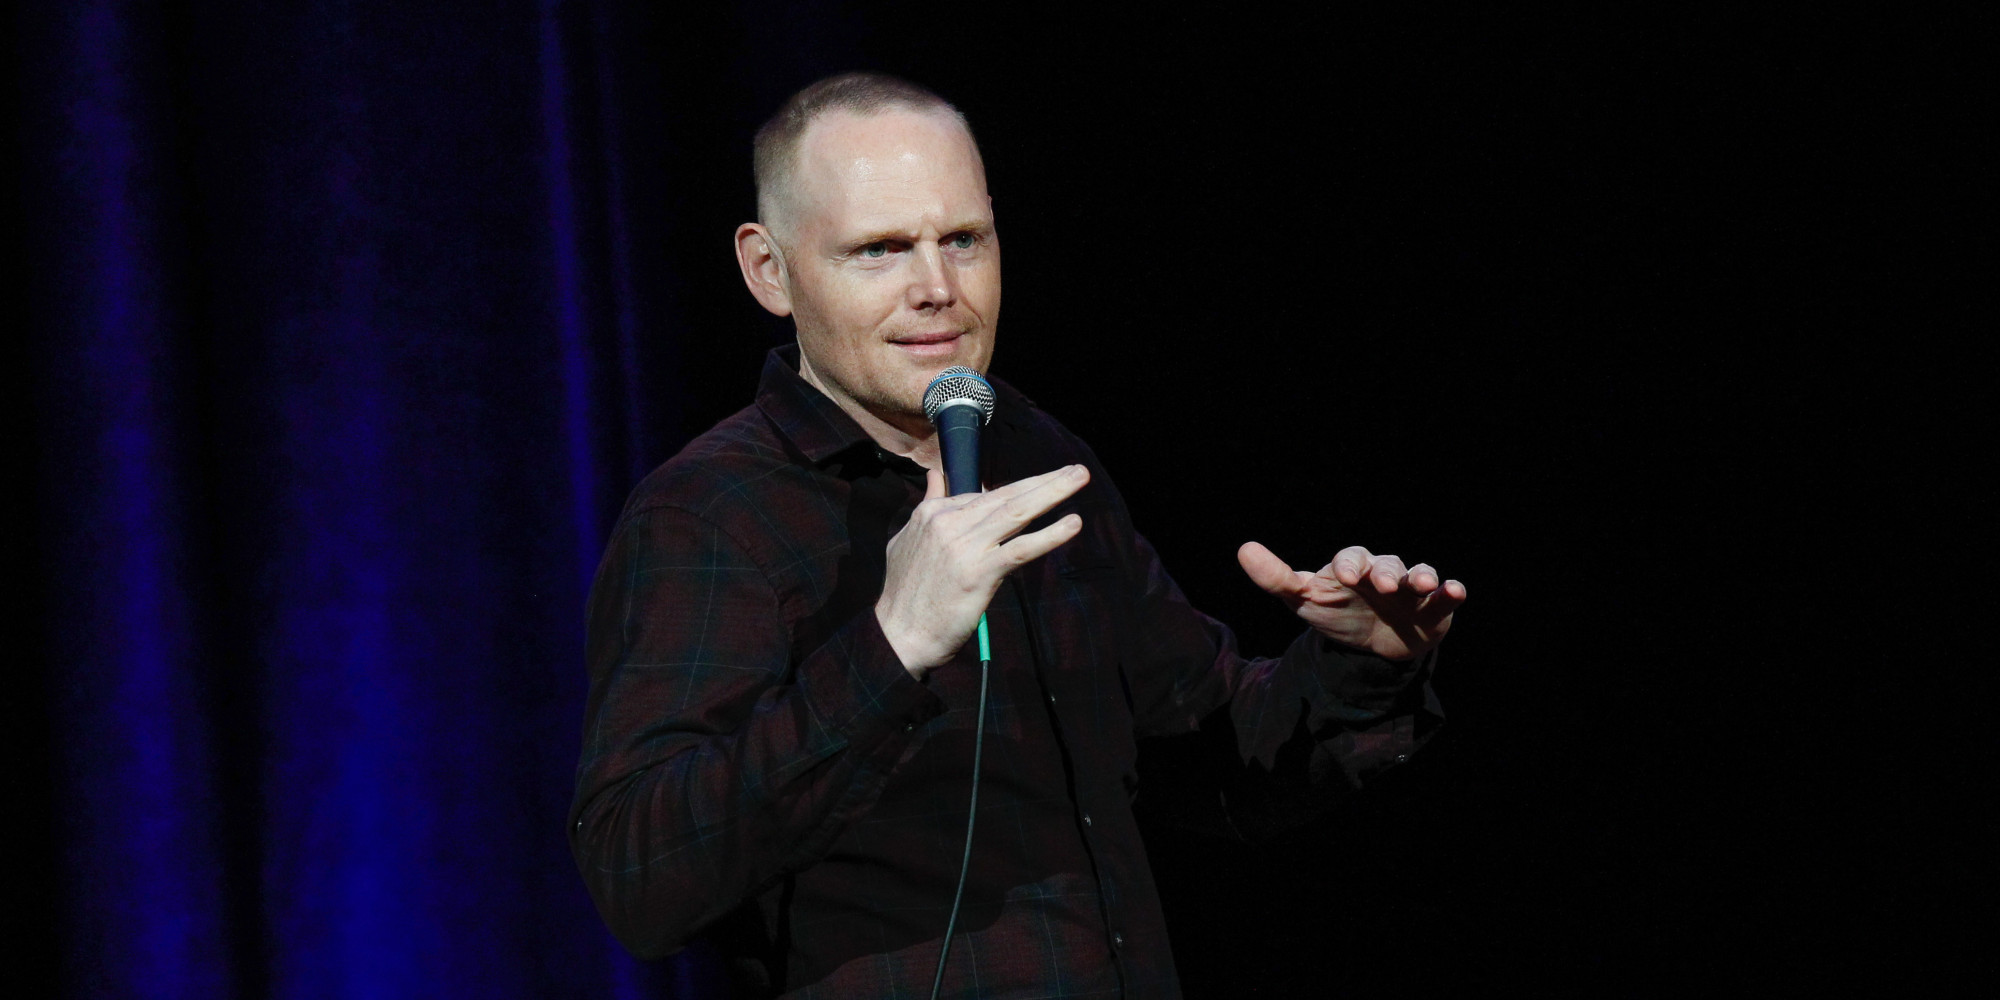 Ranking Bill Burr S Comedy Specials The Passion Of Christopher Pierznik